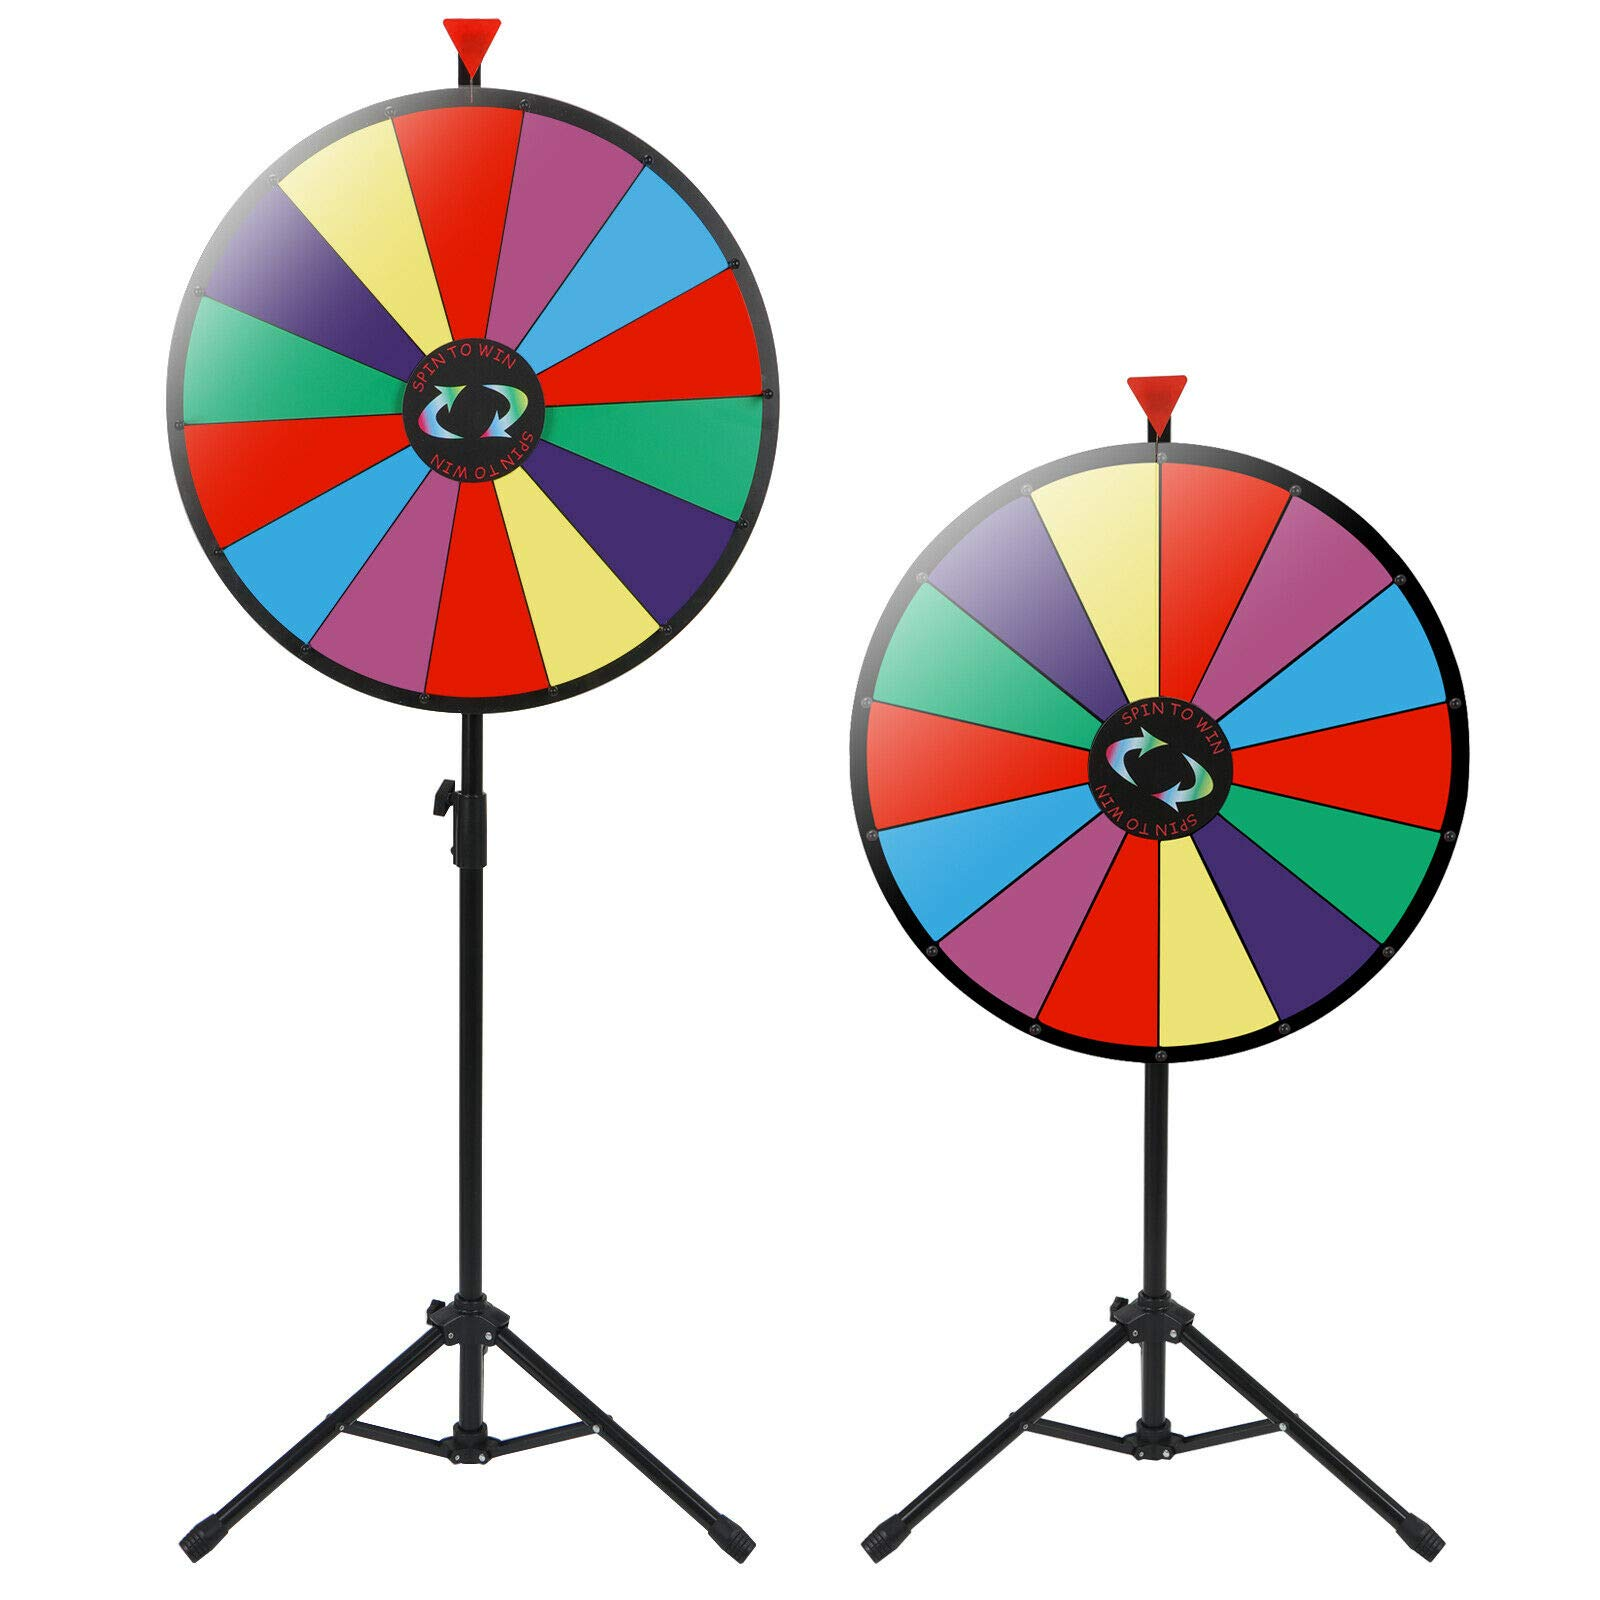 24'' Prize Wheel Metal Tripod Adjustable Floor Stand Editable Reusable Dry Erase Color Portable 14 Slot Perfect For Trade-shows Promotion Activities Carnivals Annual Meetings Holiday Activities Parties by Auténtico (Image #4)